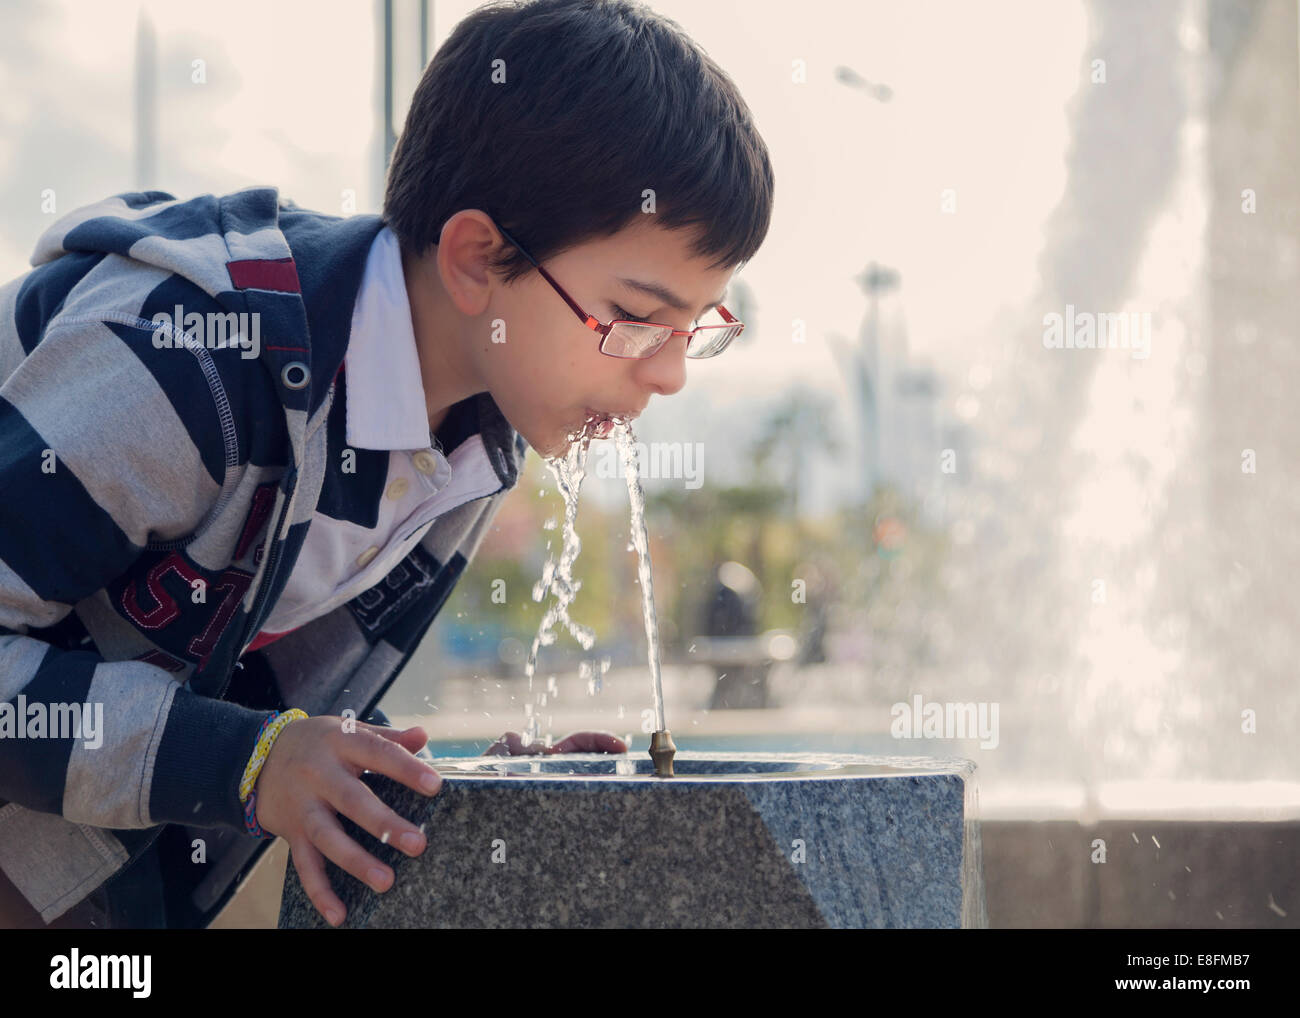 Spain, Cordoba, Boy (12-13) drinking water from fountain in park - Stock Image